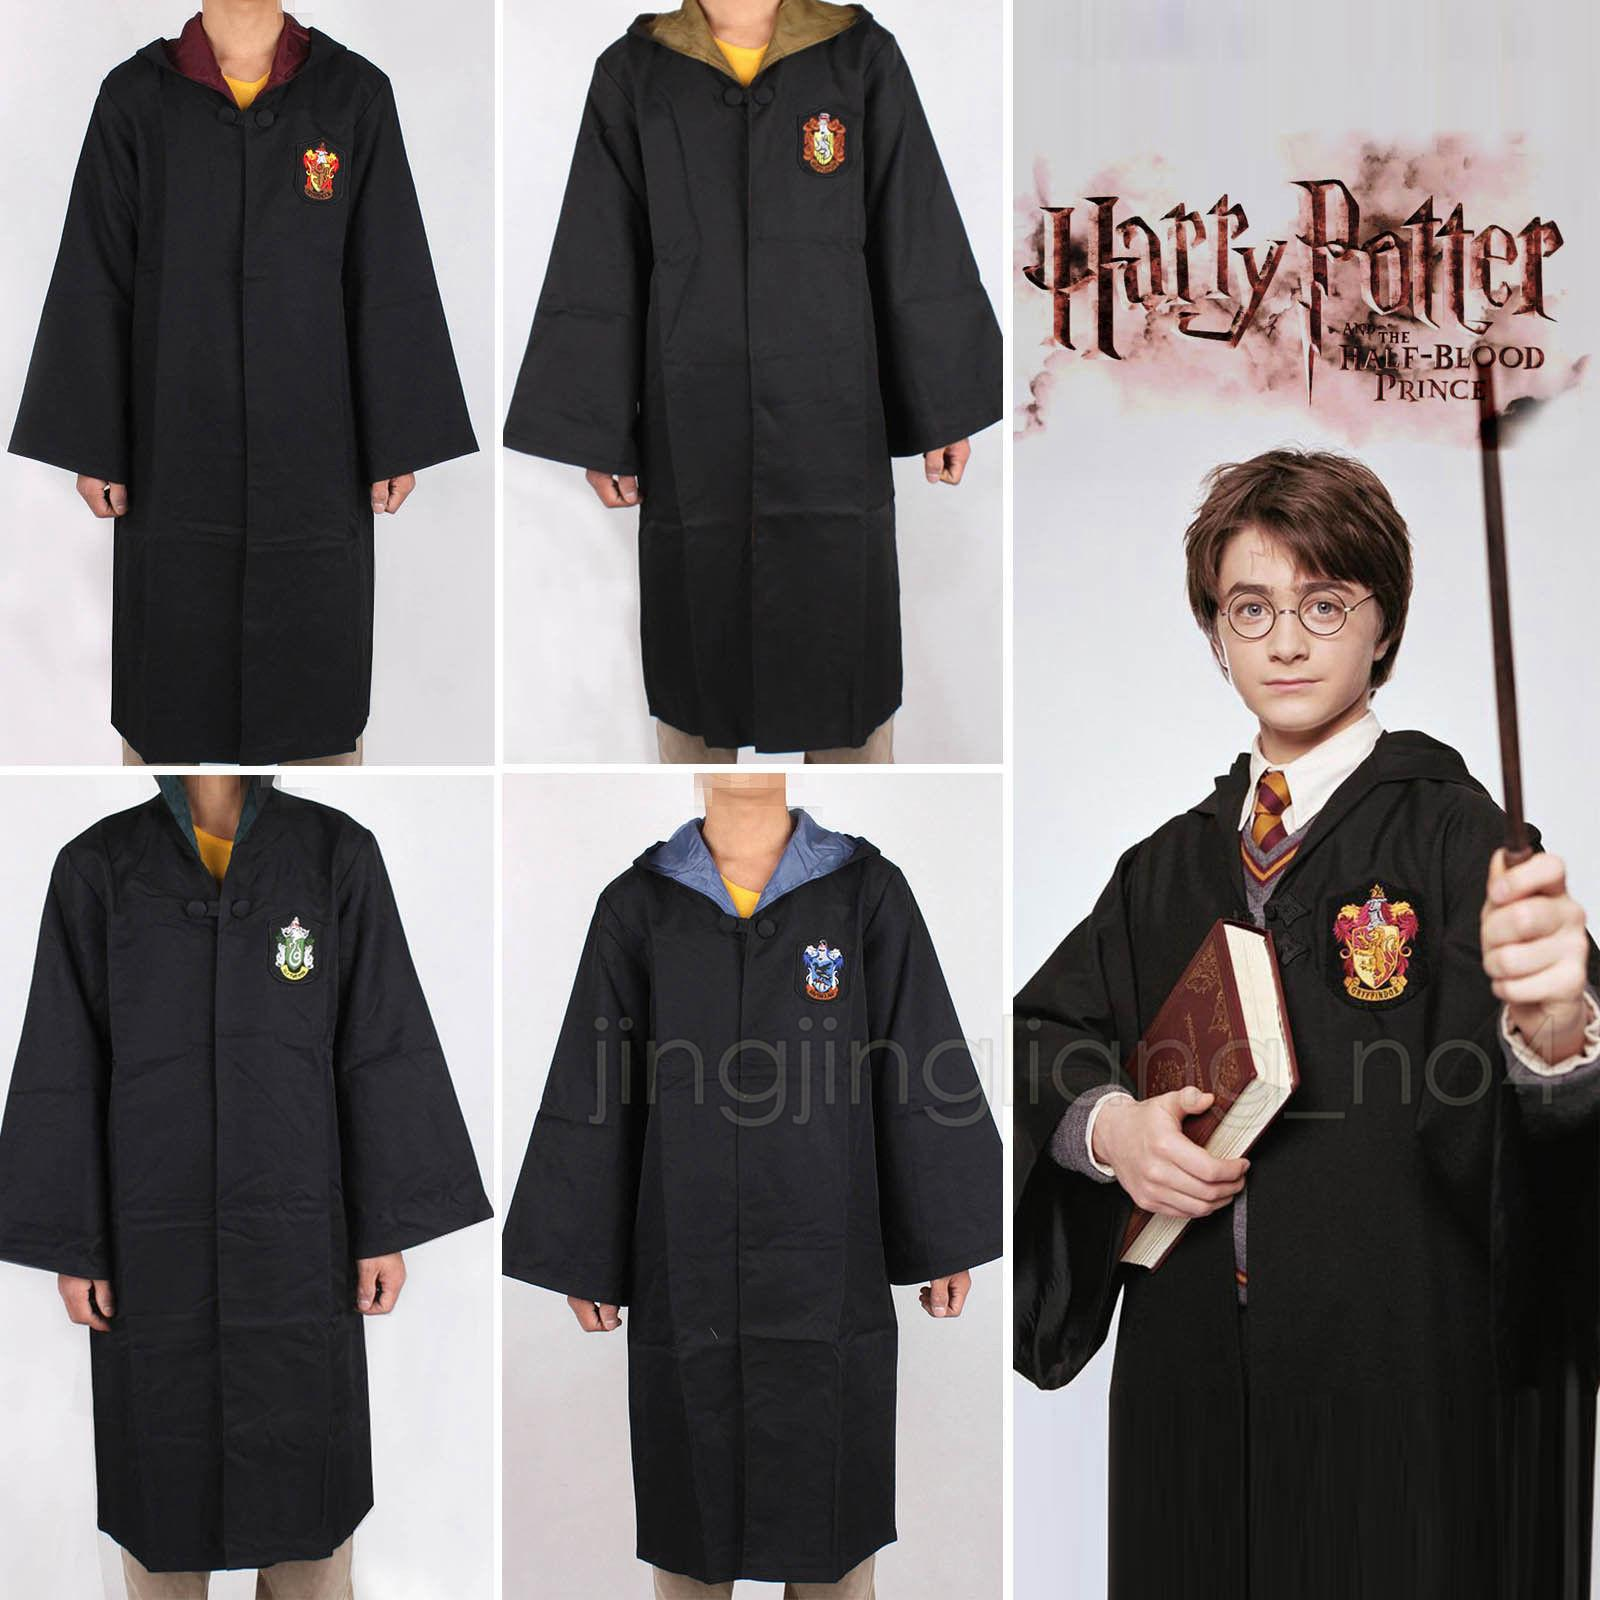 adult kids potter gryffindor cloak robe women men hufflepuff ravenclaw slytherin clothing for harries halloween costume cosplay dda600 great family